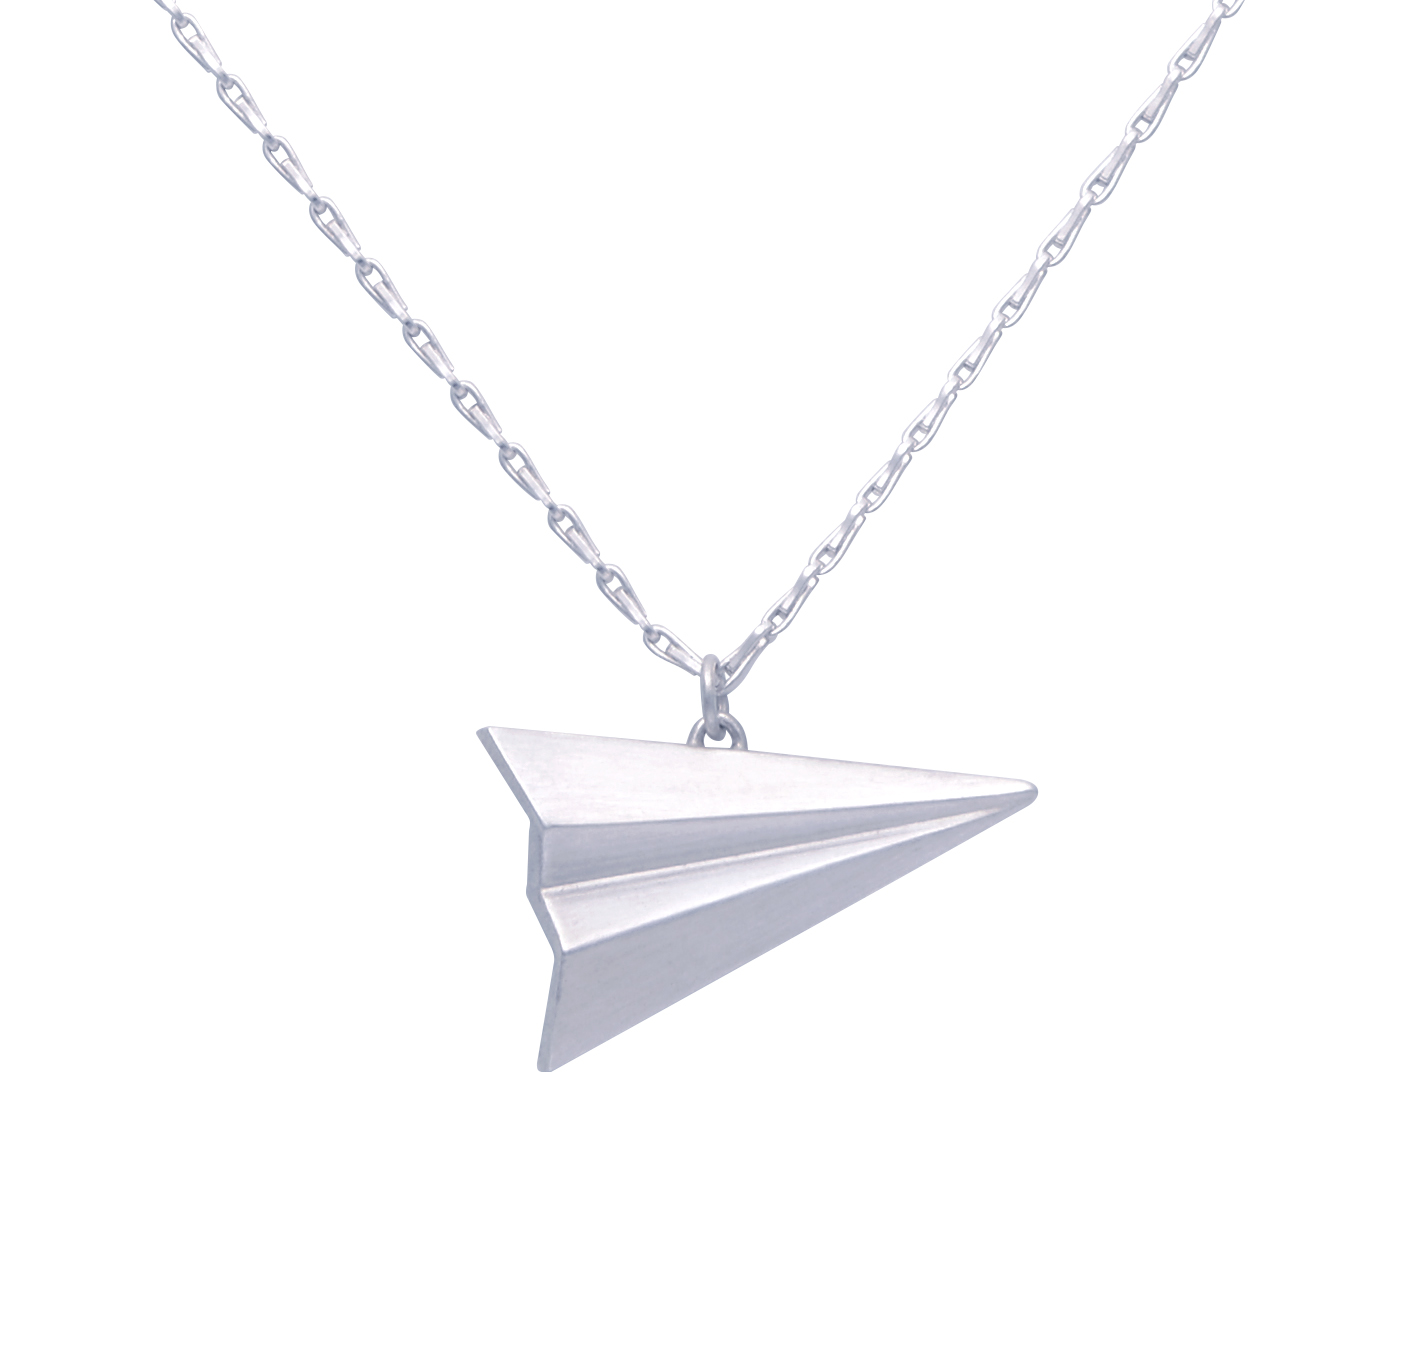 Alice Barnes Jewellery - Long Paper Plane Necklace